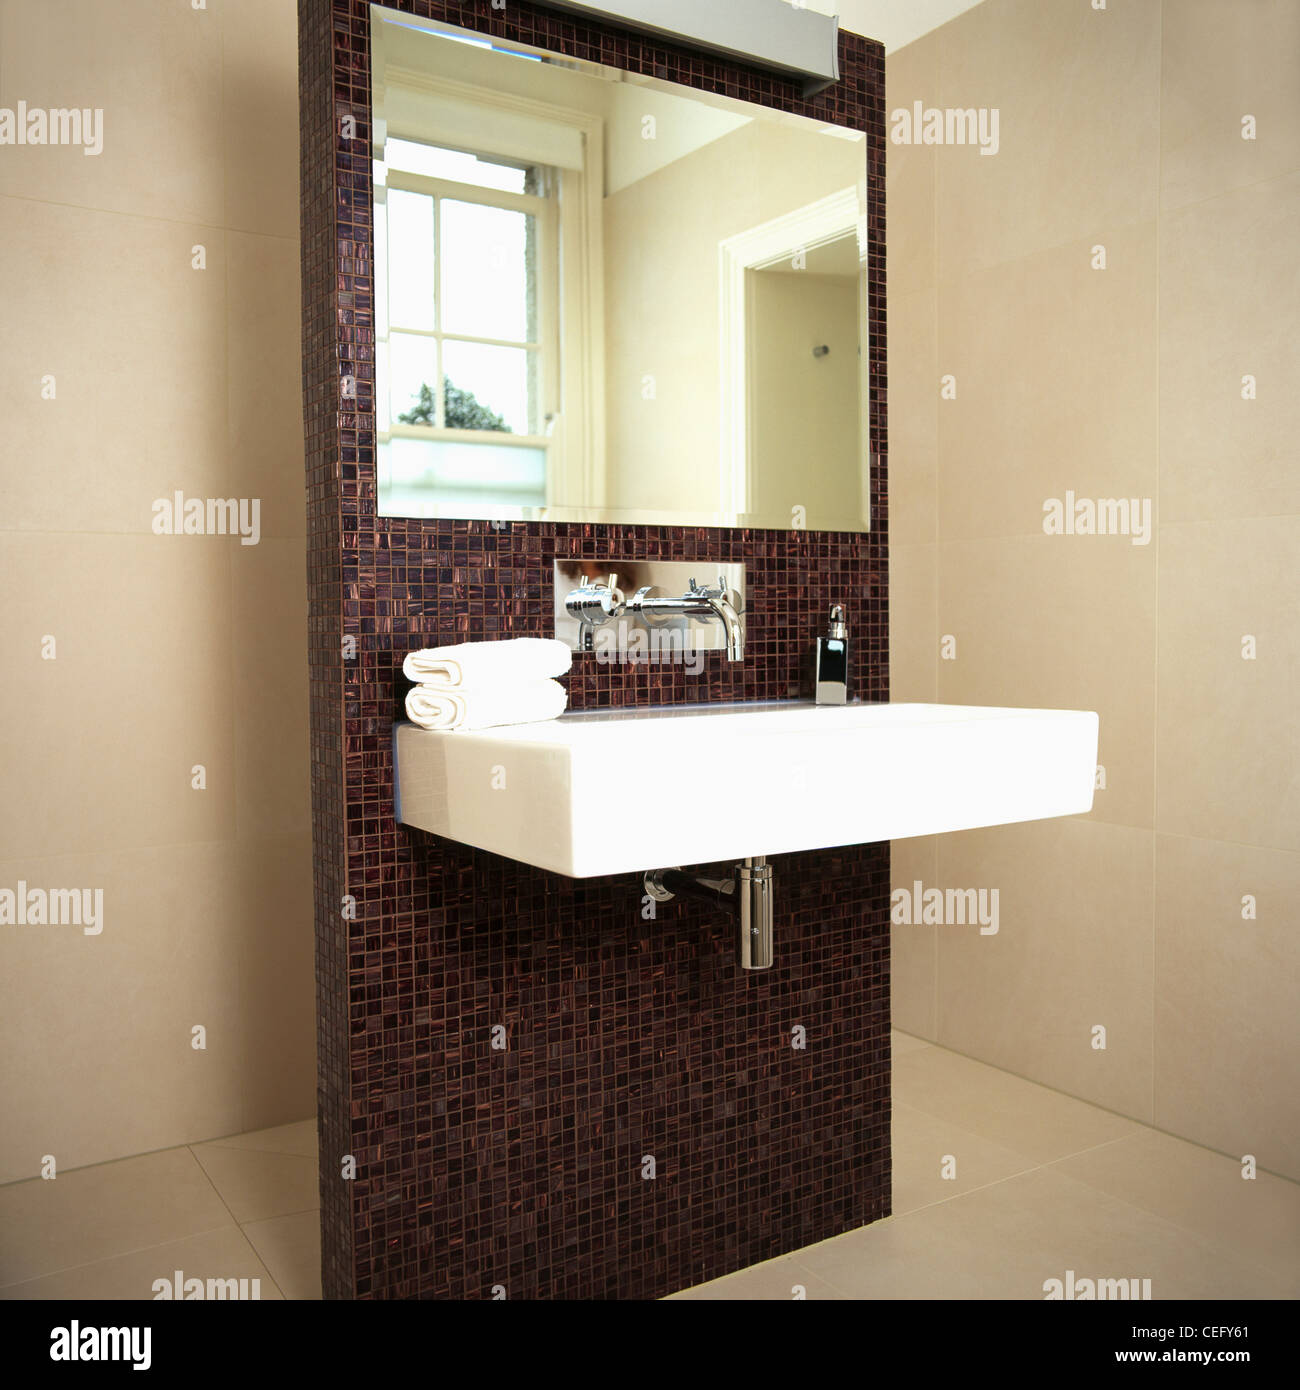 4ed86a6464850 Large mirror and rectangular white basin on brown mosaic tiled Stock ...